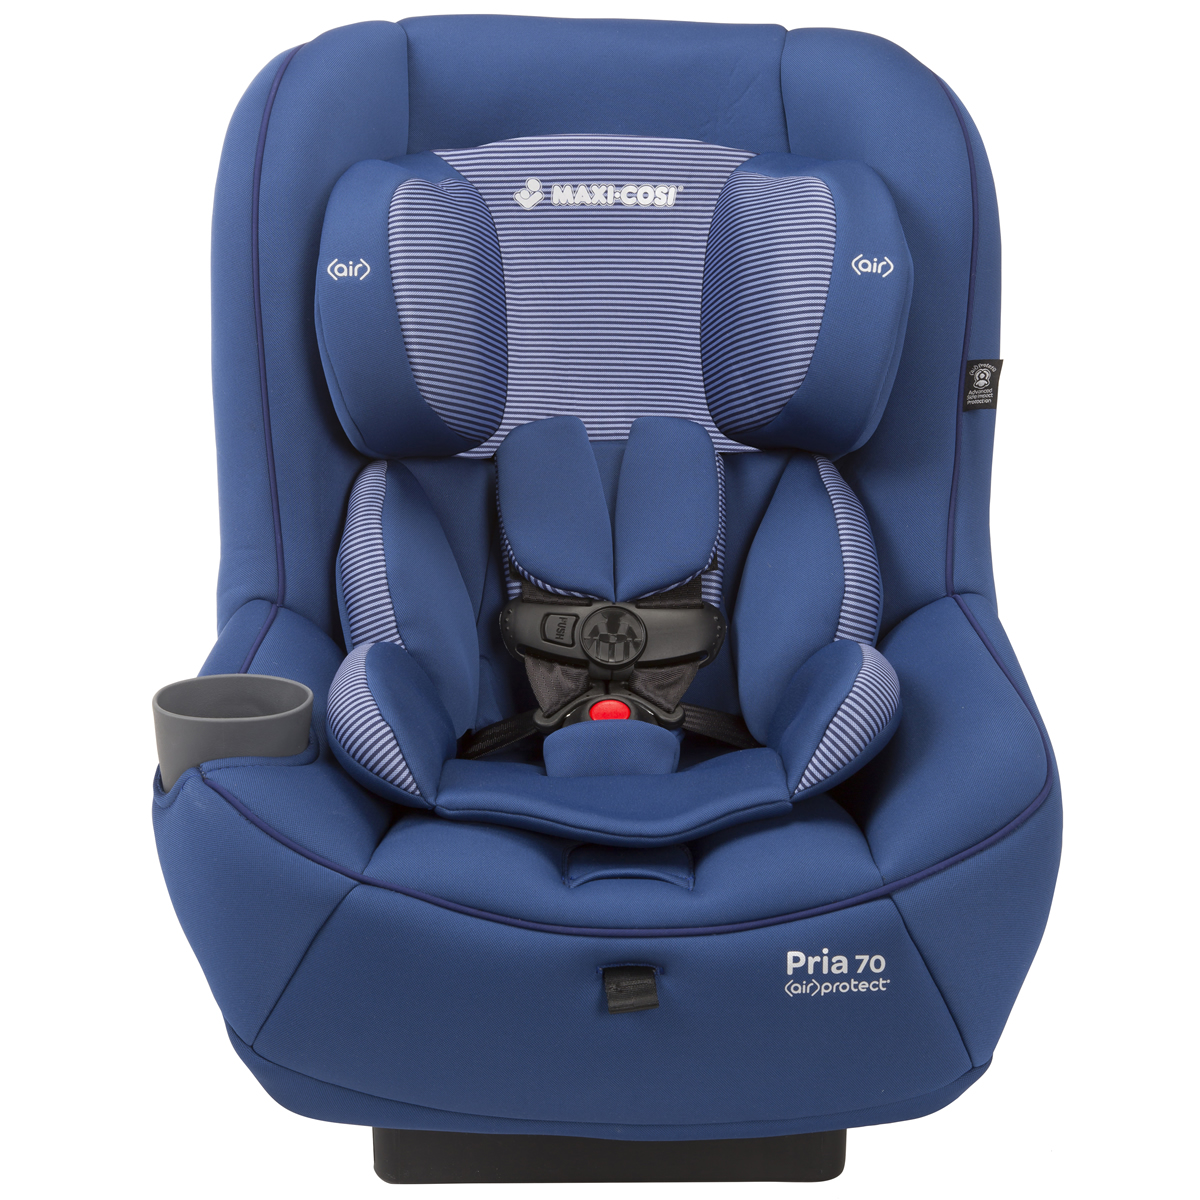 MAXI-COSI Pria 70 Convertible Car Seat - Blue Base